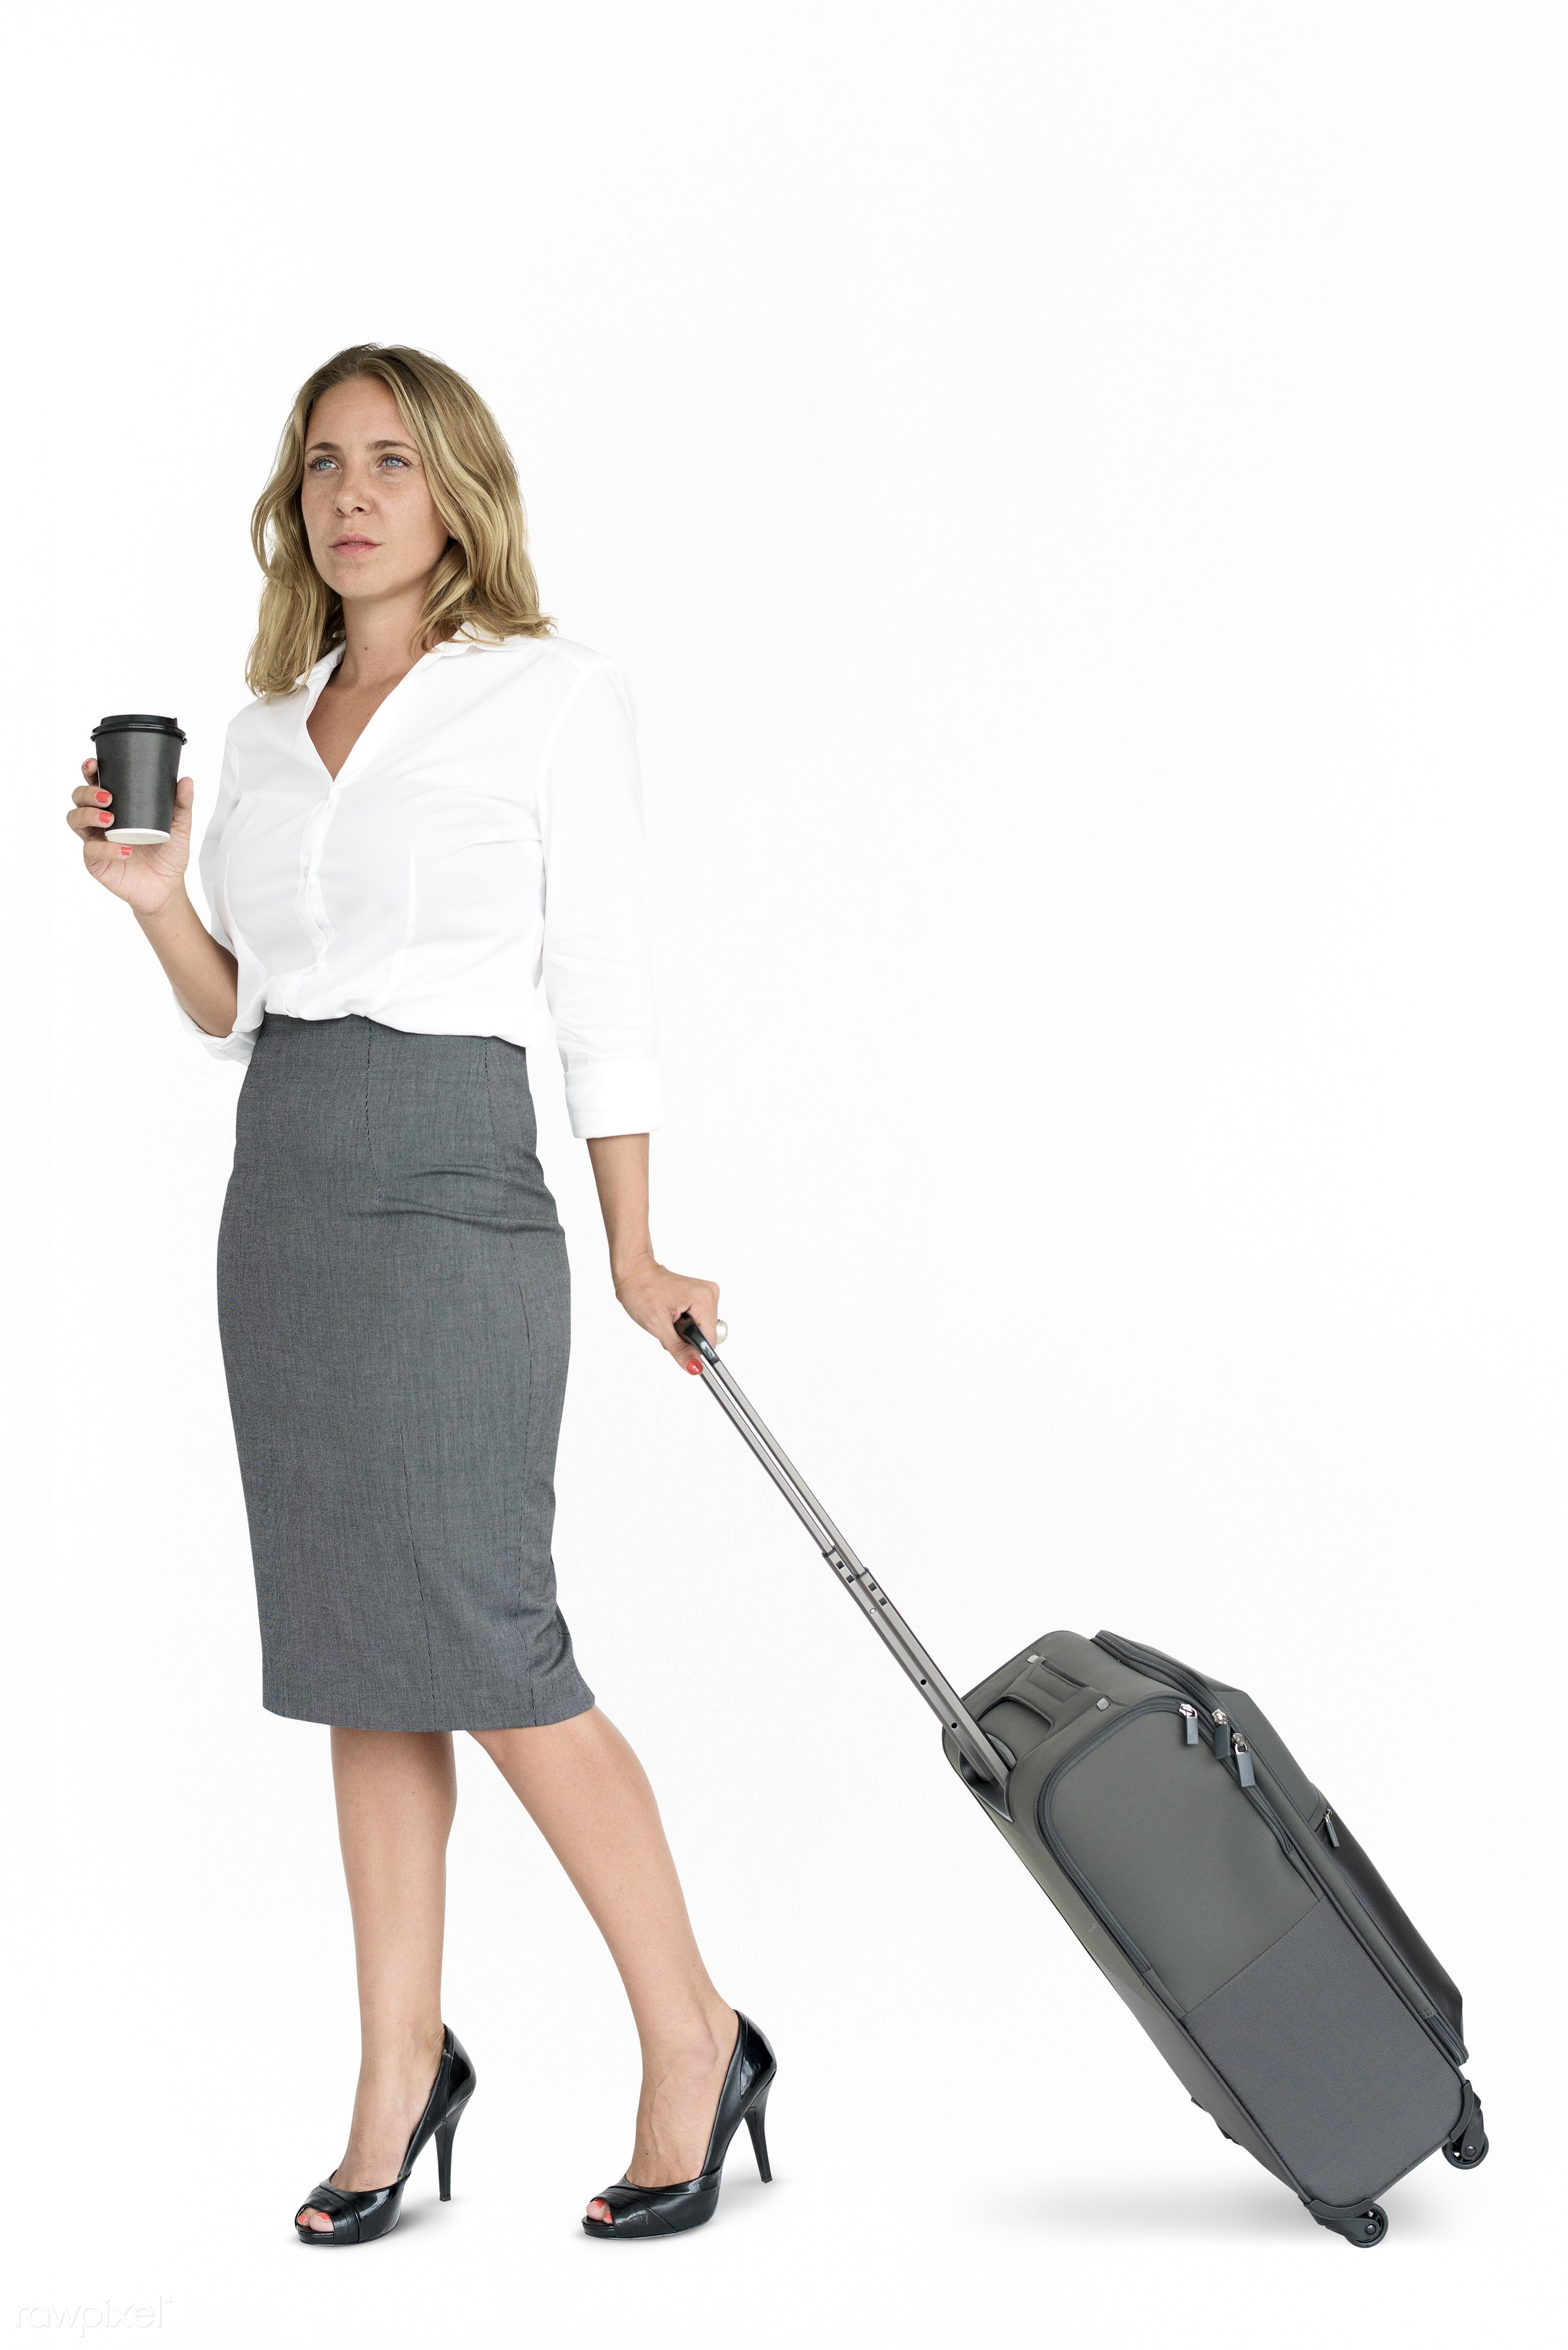 cup, studio, face, person, isolated on white, travel, people, drinks, business, trip, man, isolated, suitcase, coffee, male...